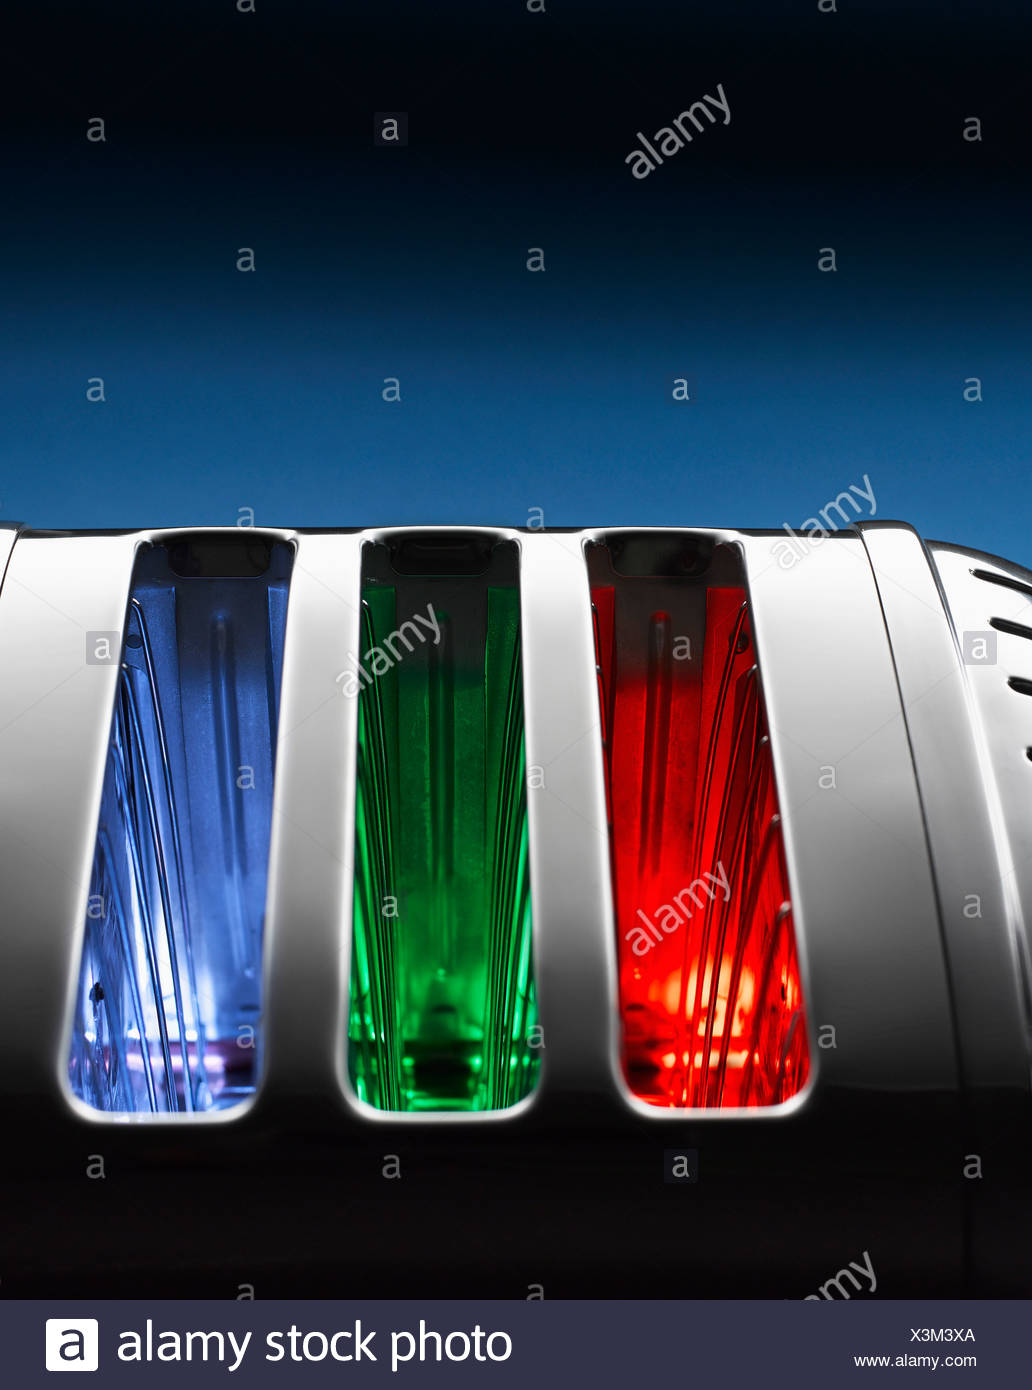 Multi coloured toaster against blue background - Stock Image